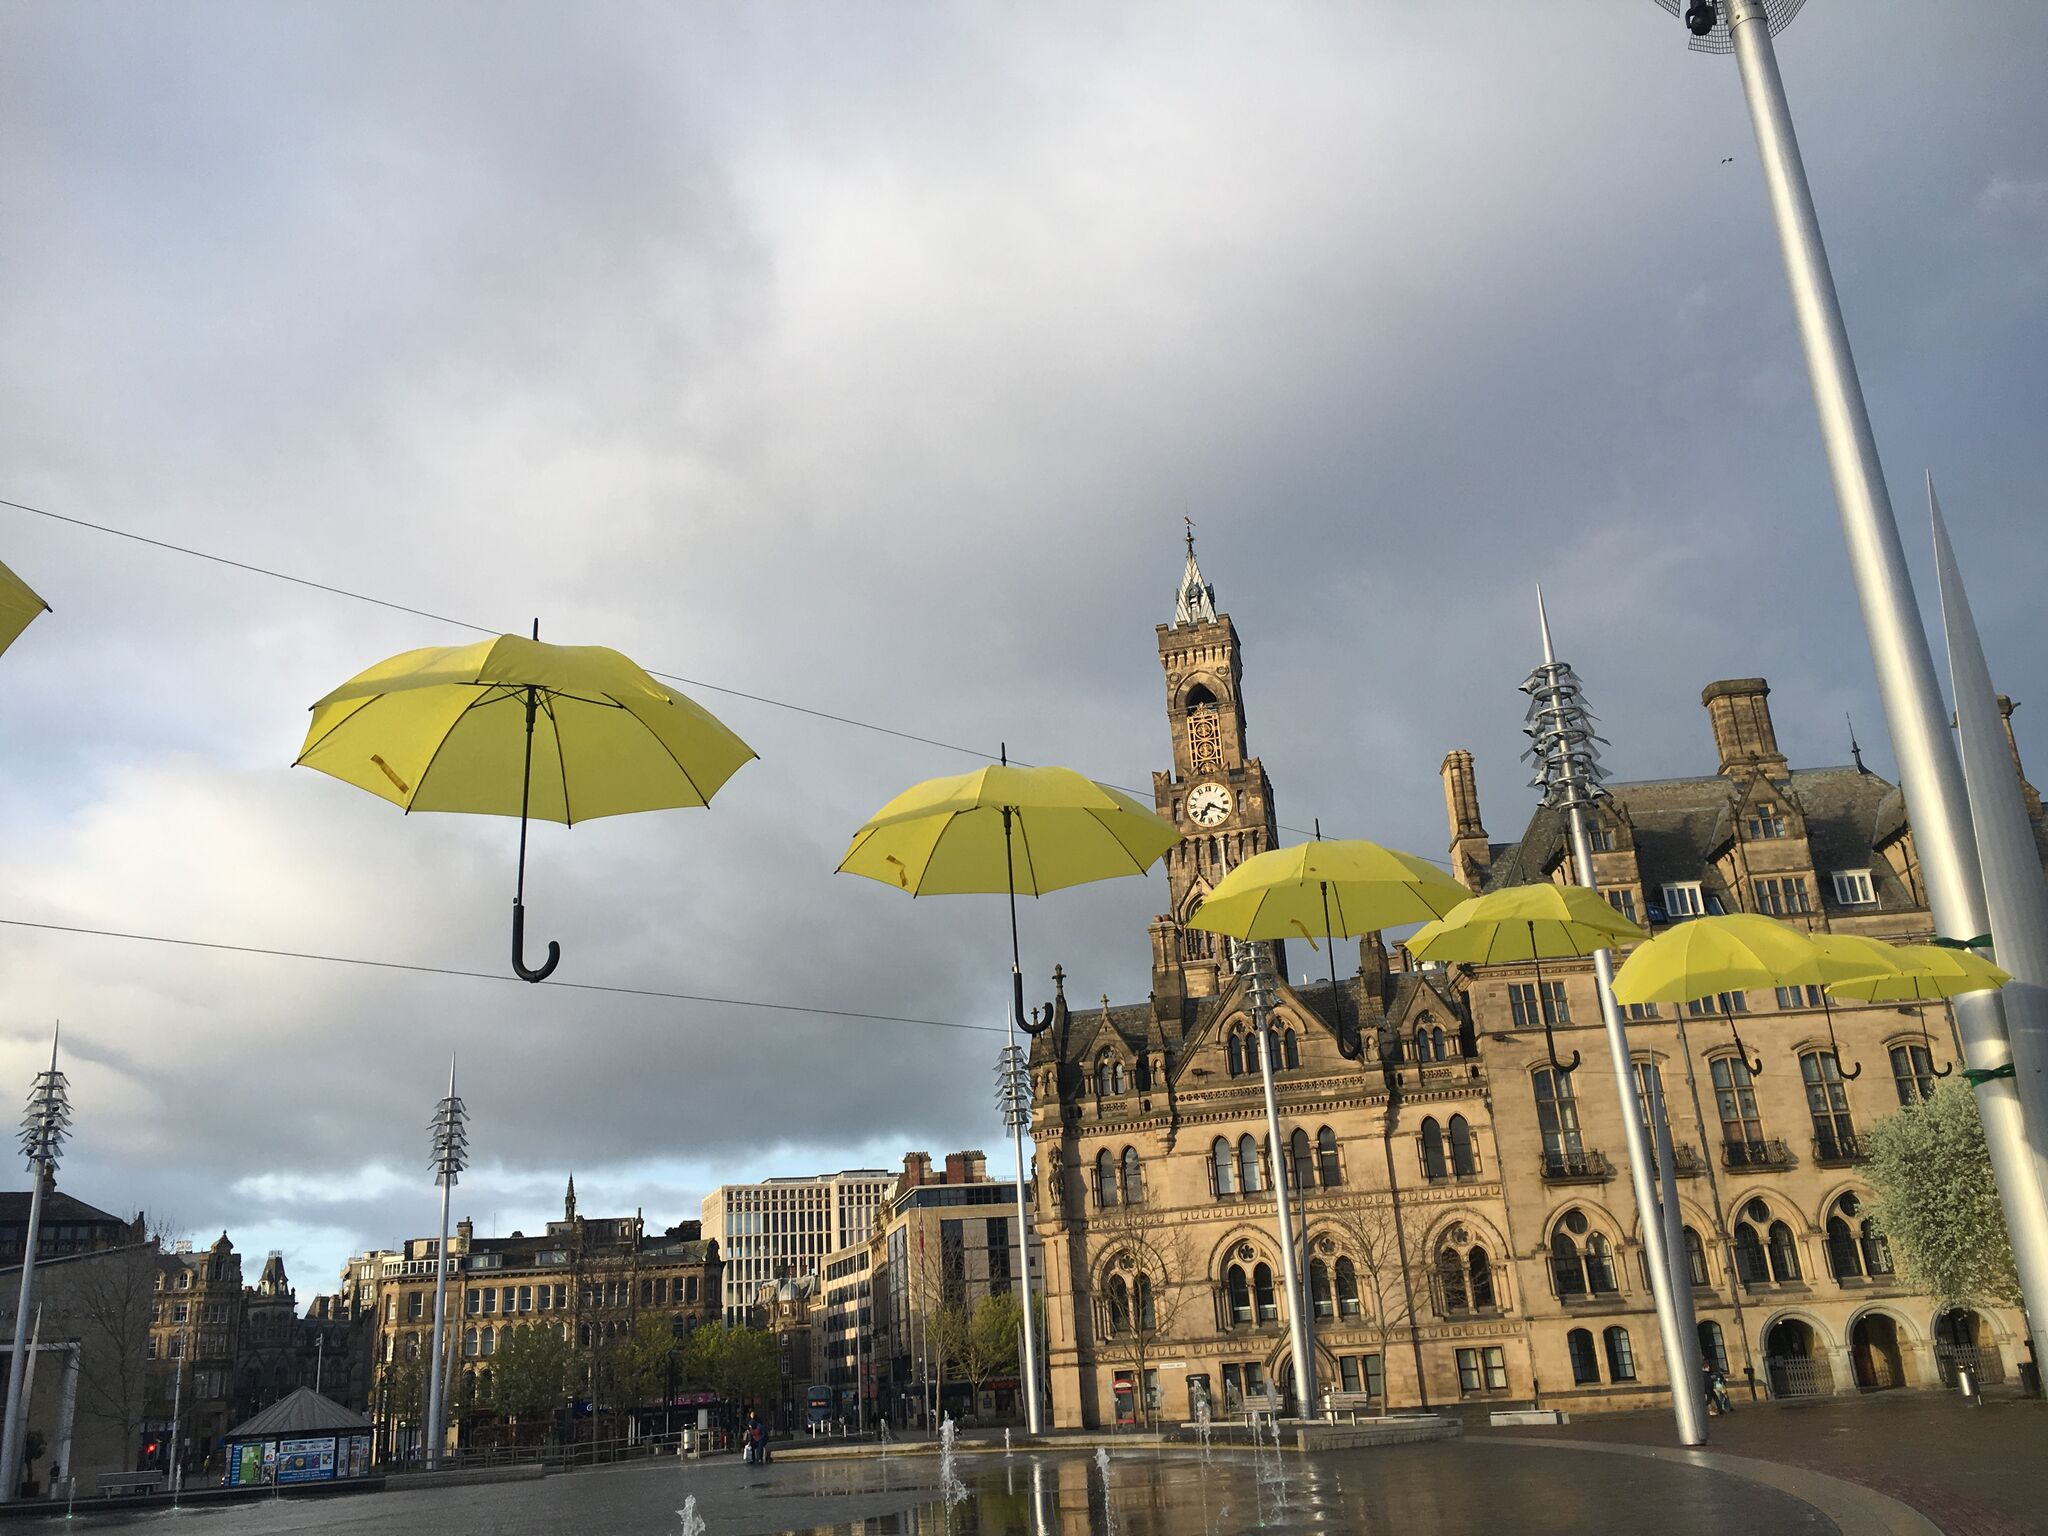 Bradford City Council – Yorkshire Day